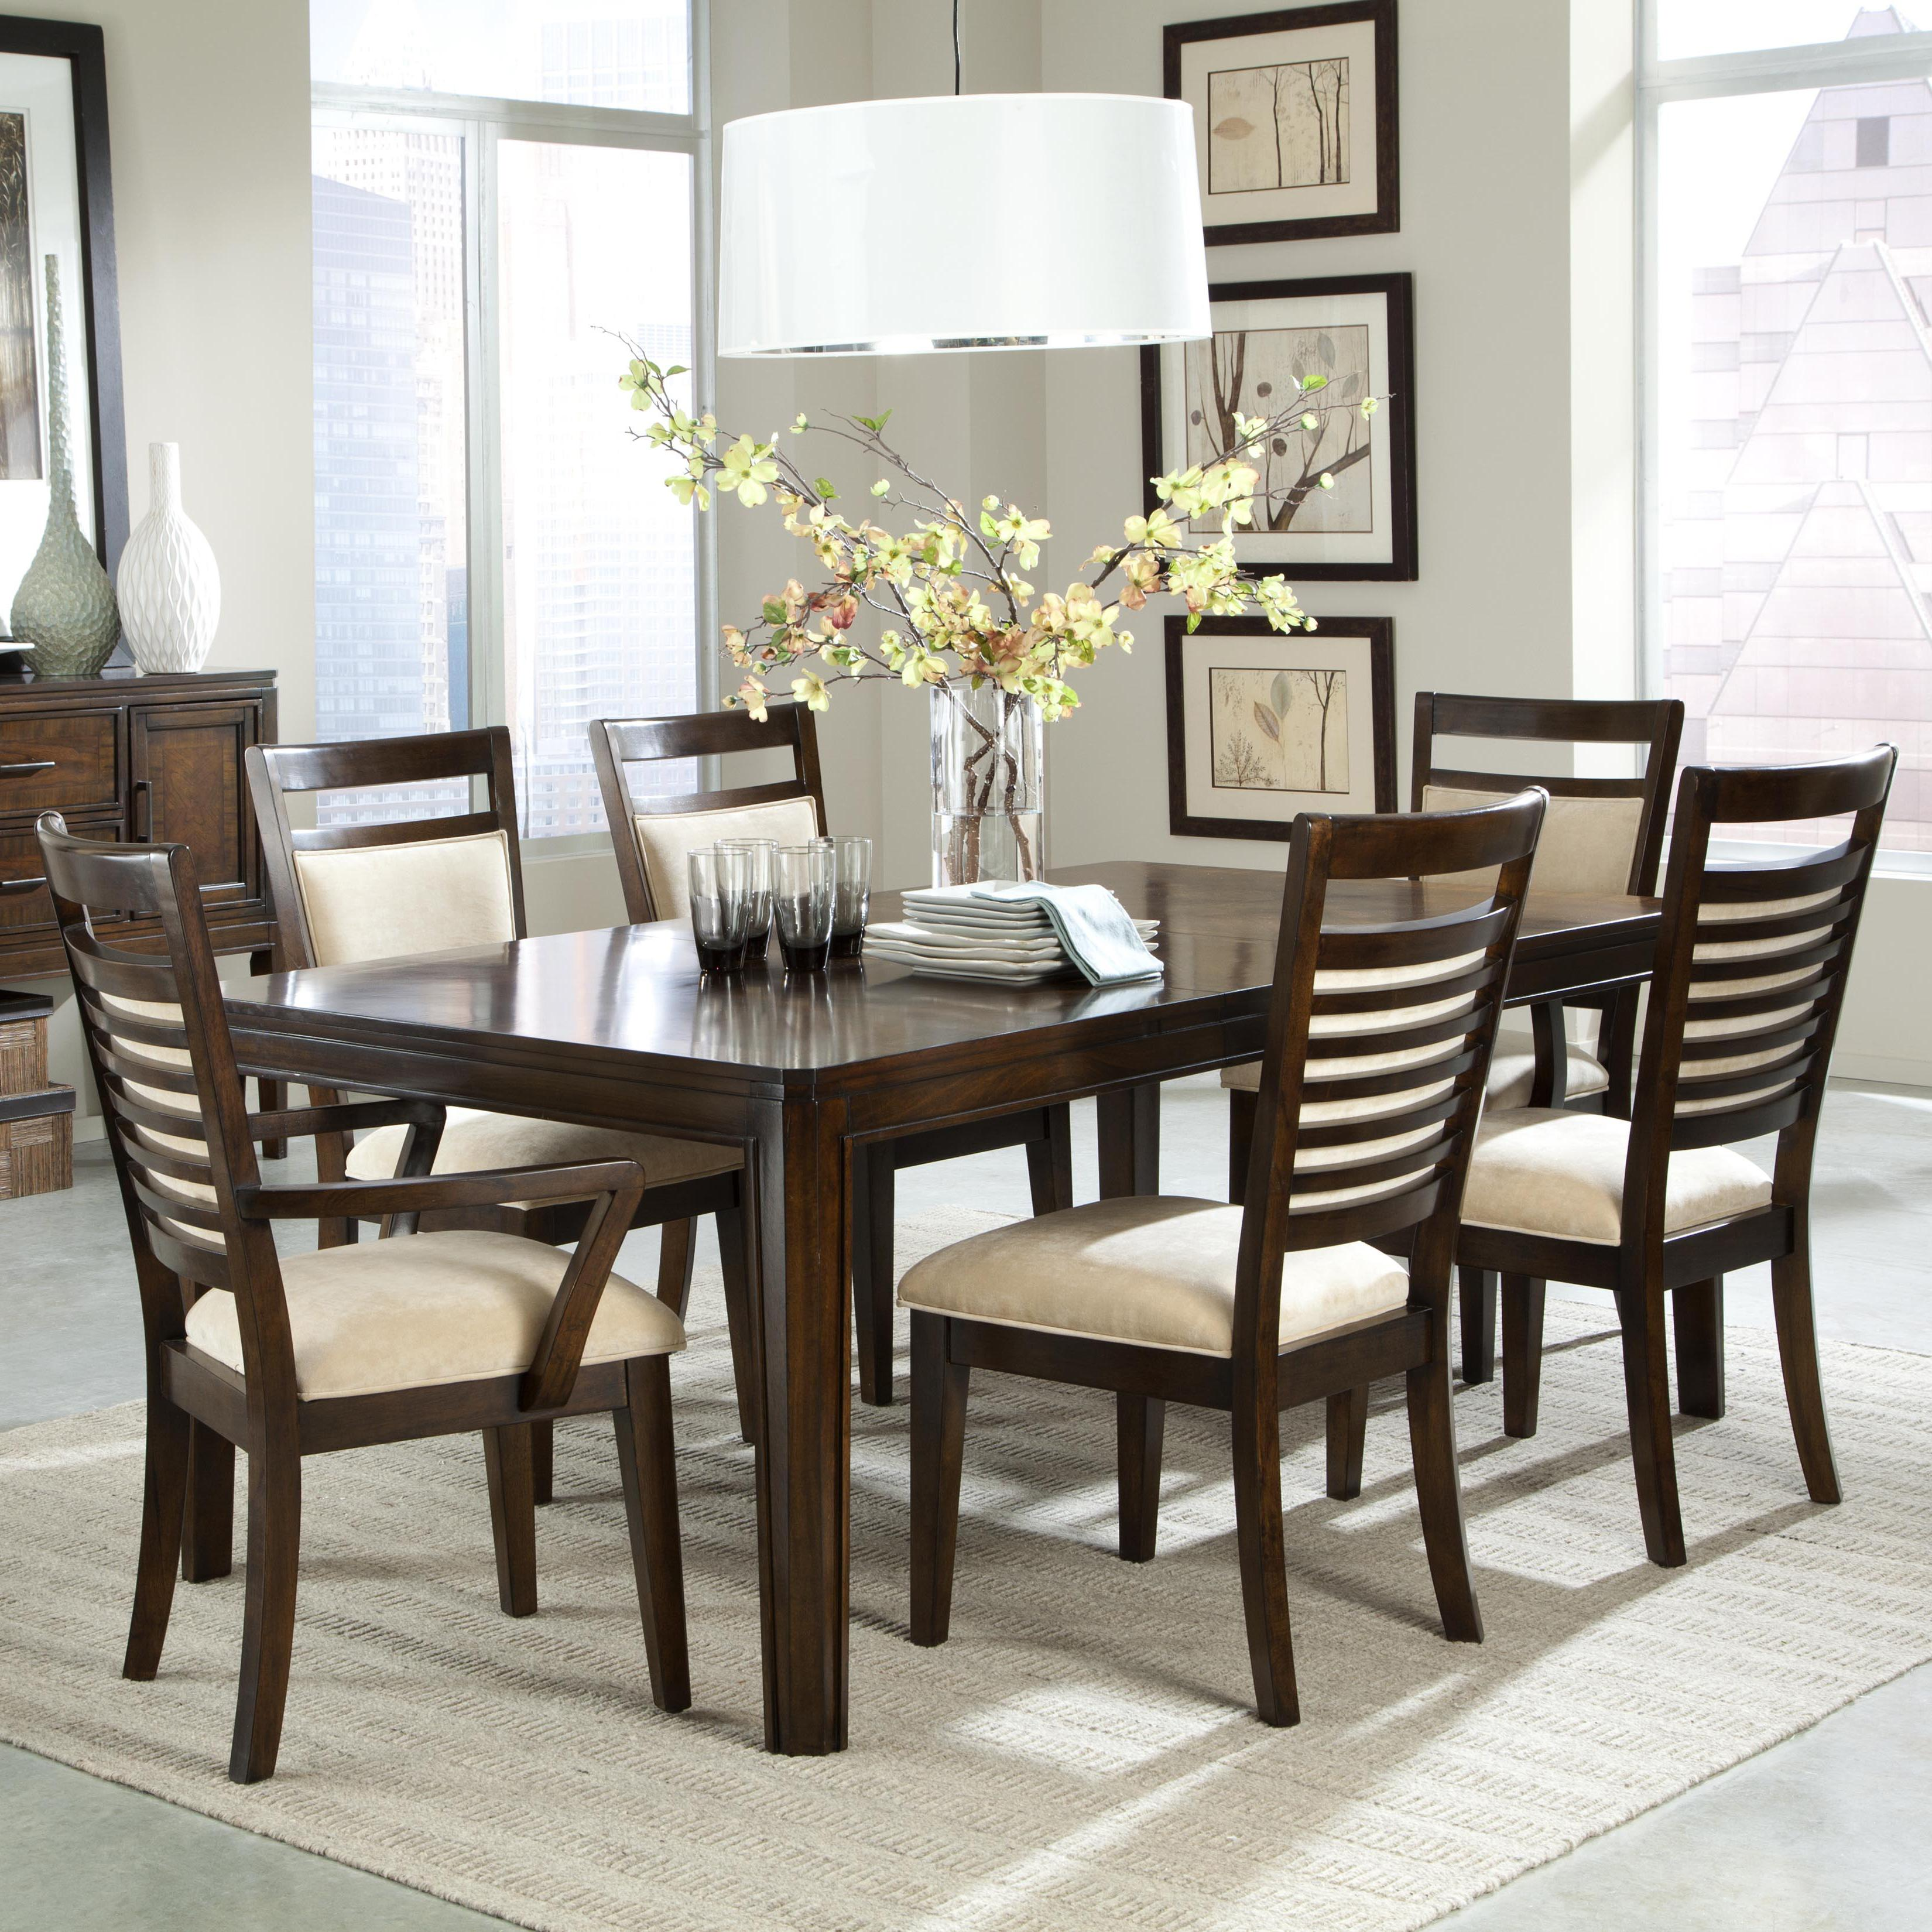 7 Piece Dining Table Set & 7 Piece Dining Table Set and Upholstered Chairs with Ladder Back ...